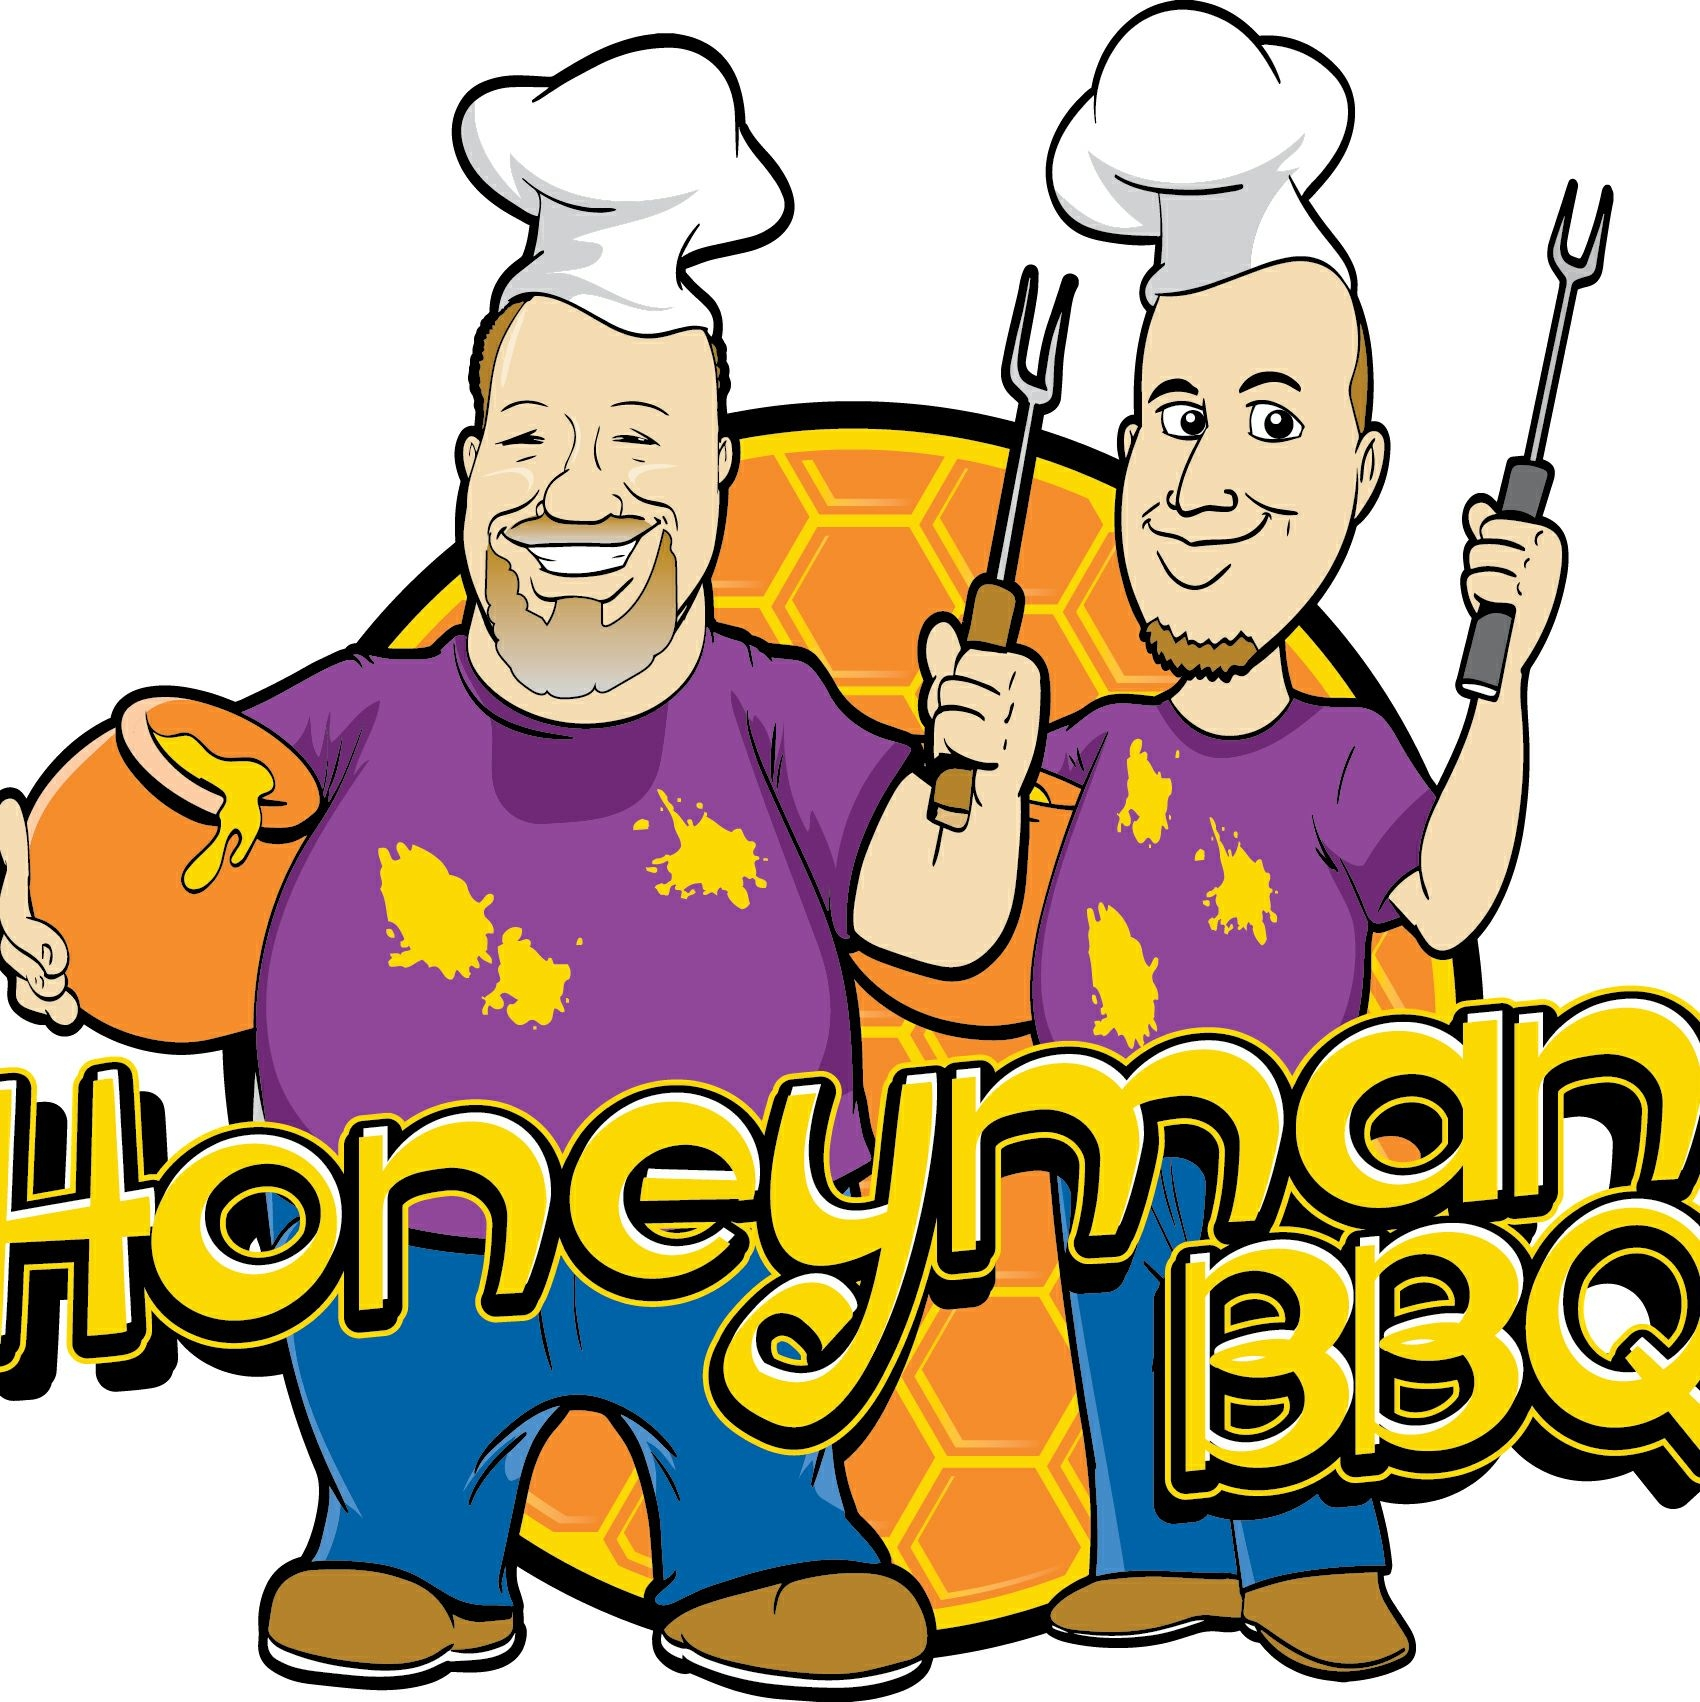 Honeyman BBQ logo